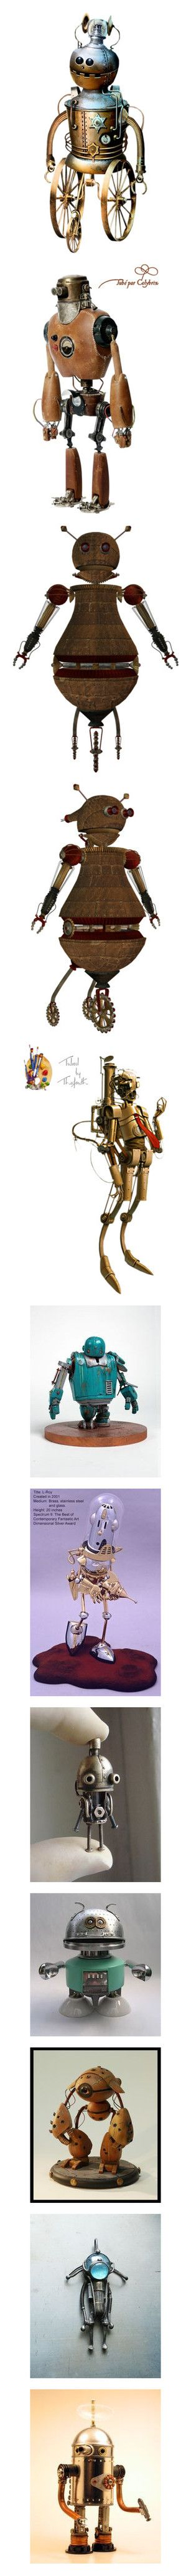 """Steampunk Robots"" by mallinturmeric ❤ liked on Polyvore featuring steampunk and robots"